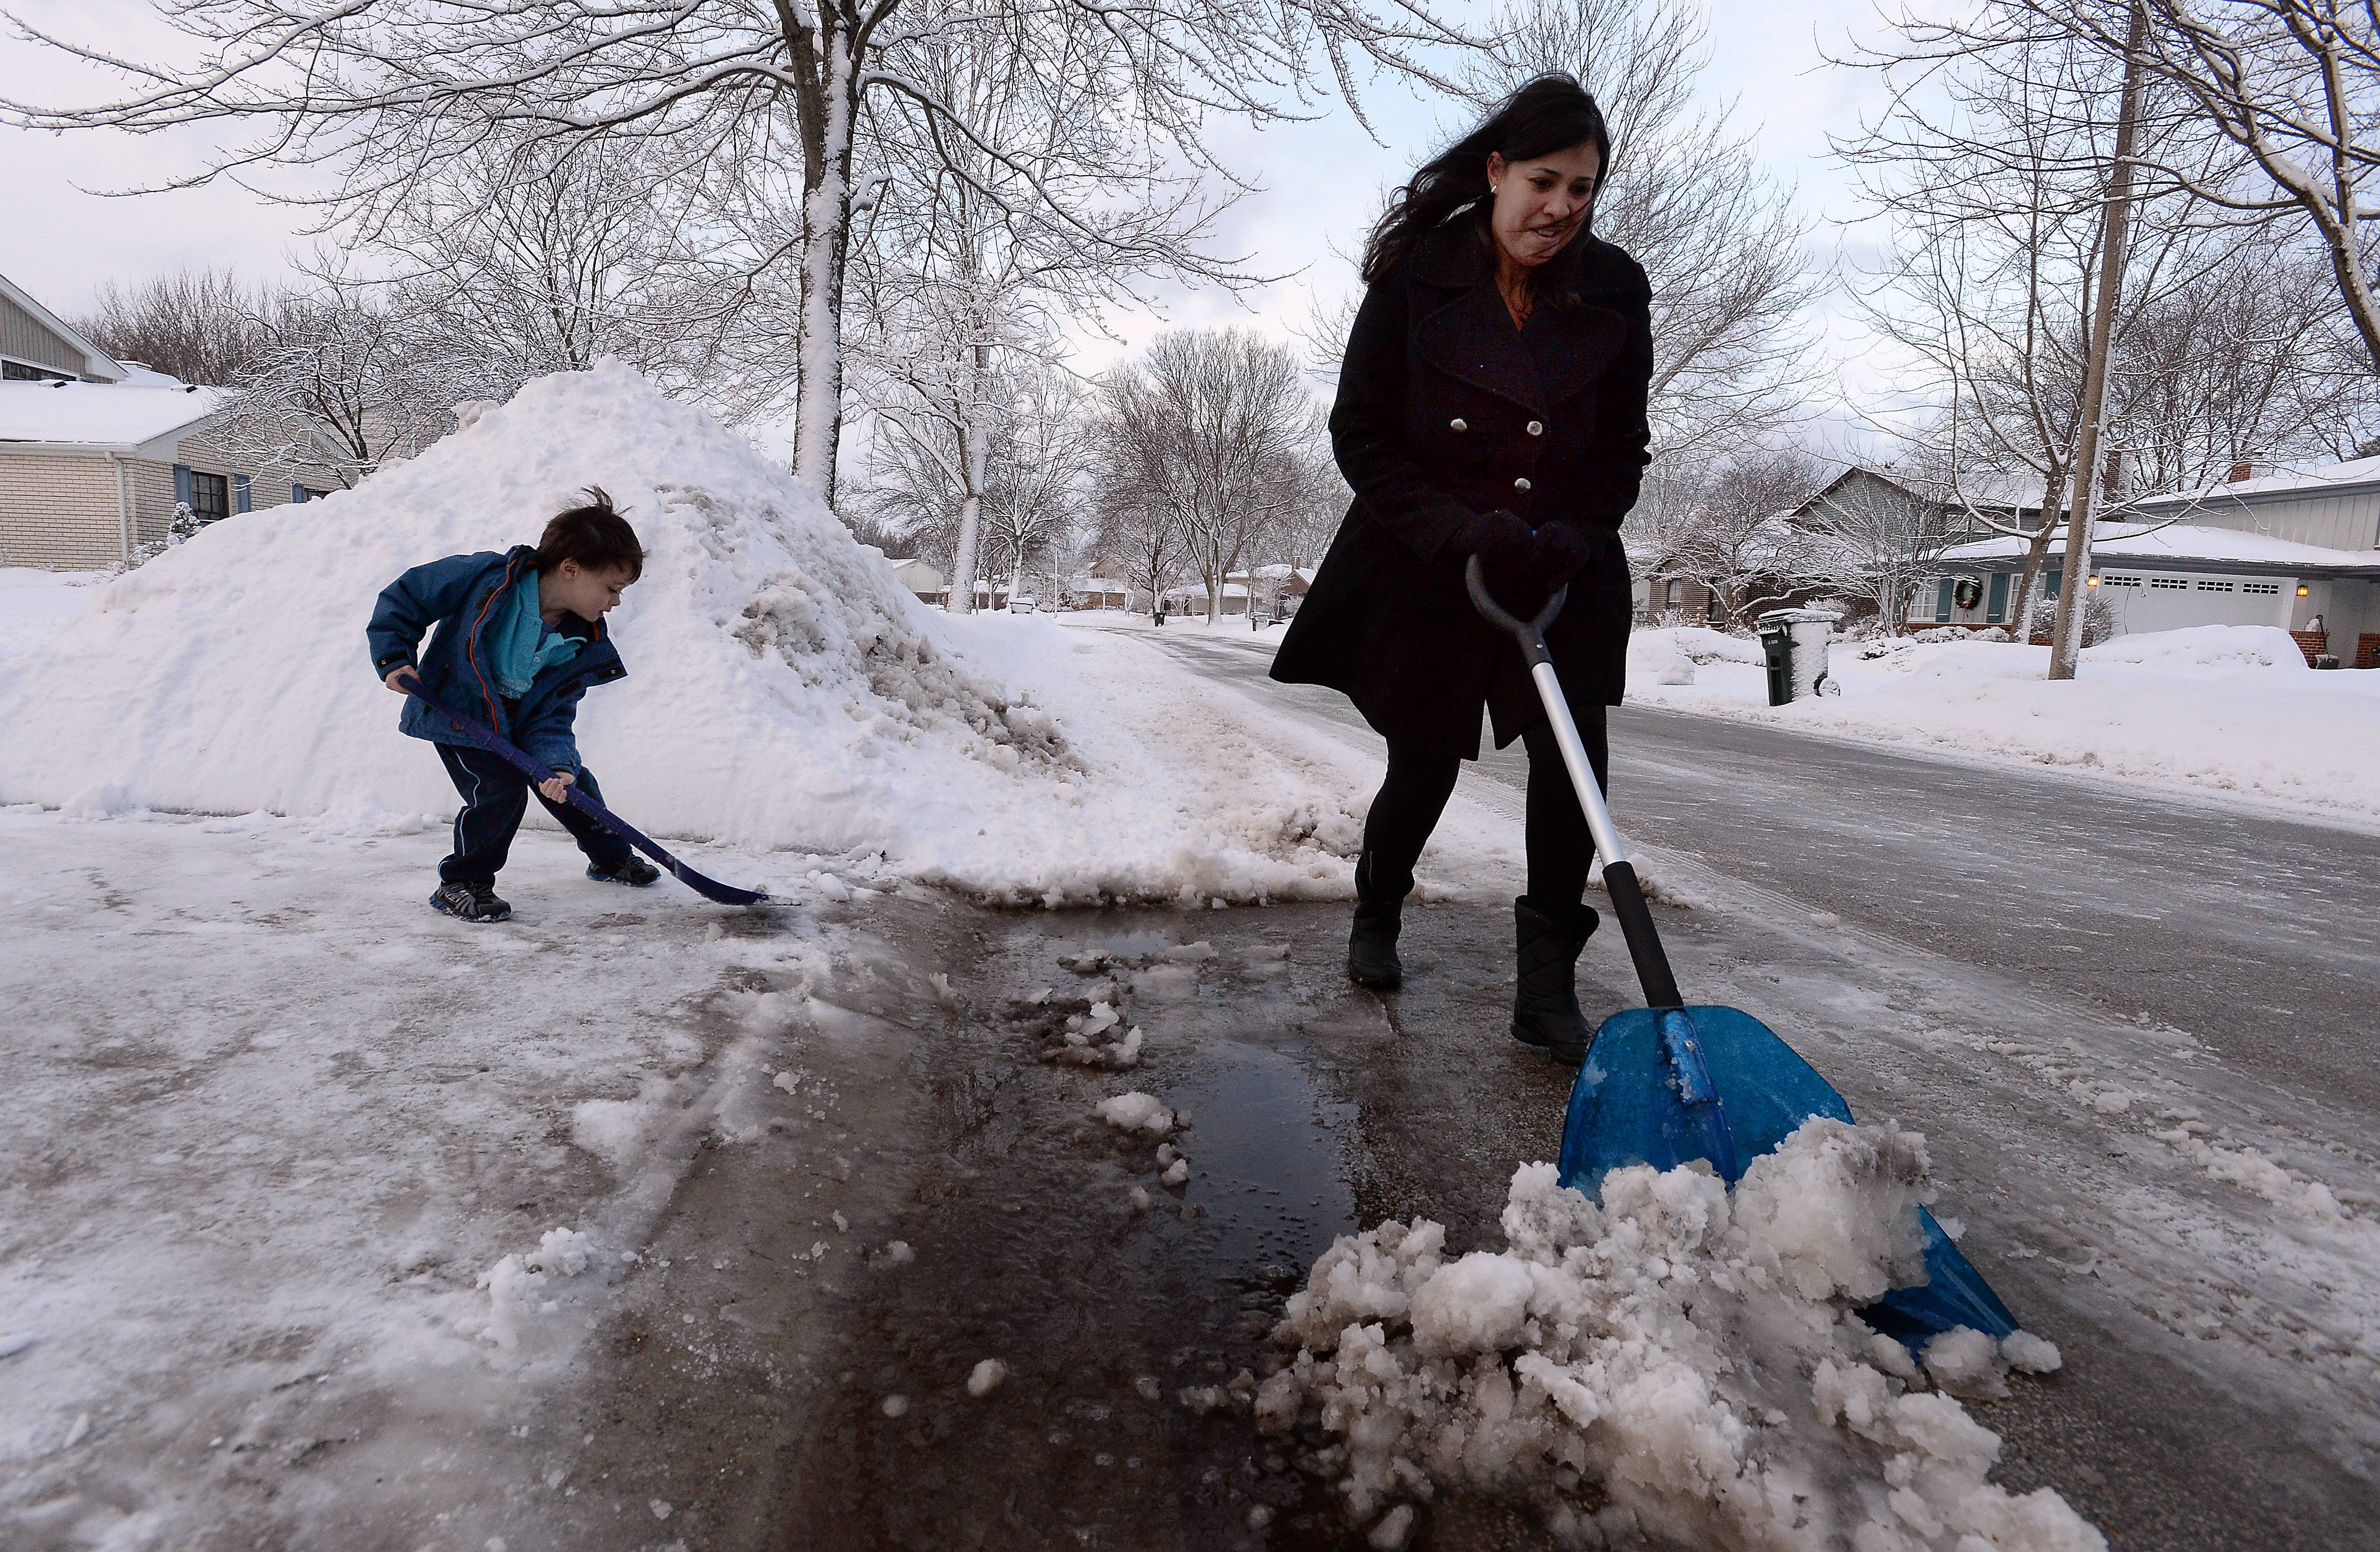 """I think we have had enough"" say Adriana Koening, of Palatine, as she and her son Heinz, 4, shovel out their driveway."